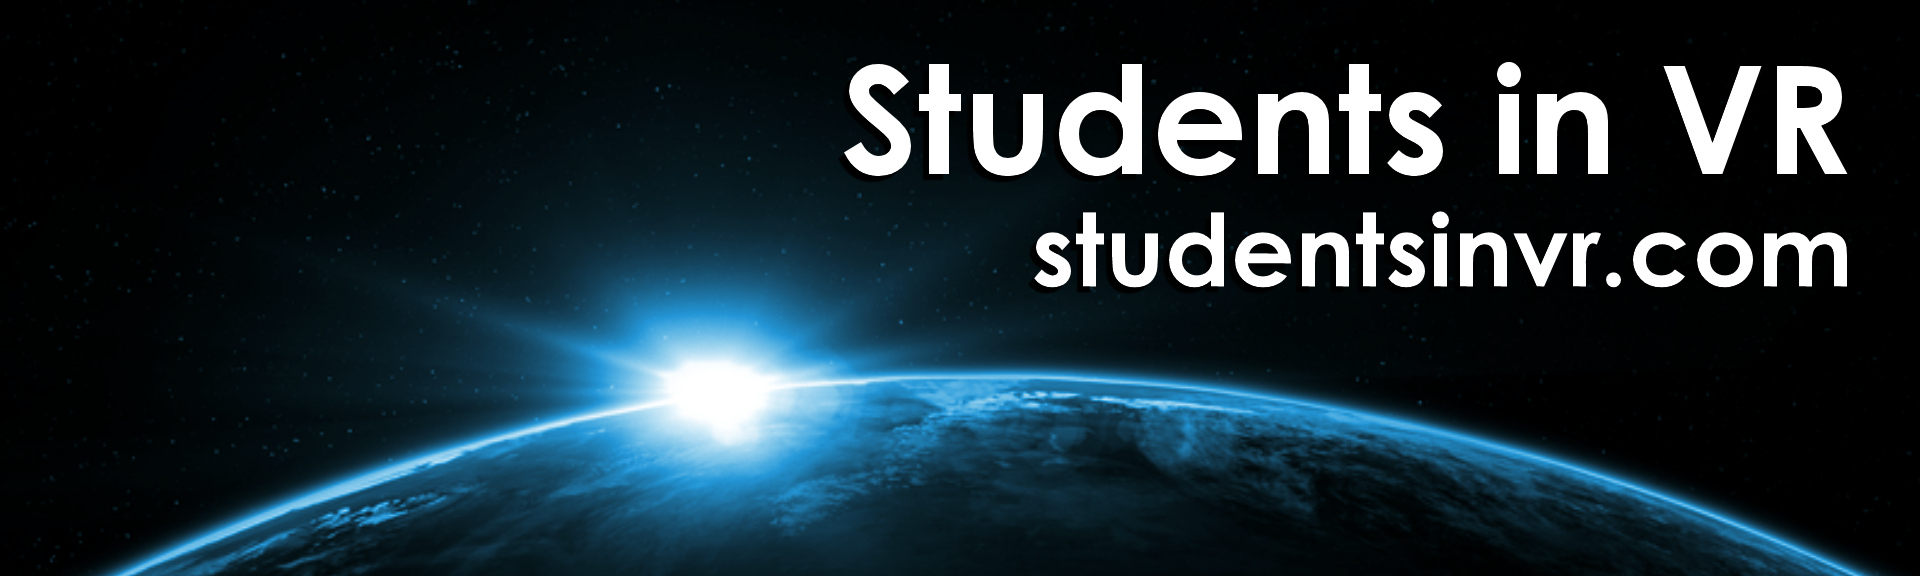 Students in VR